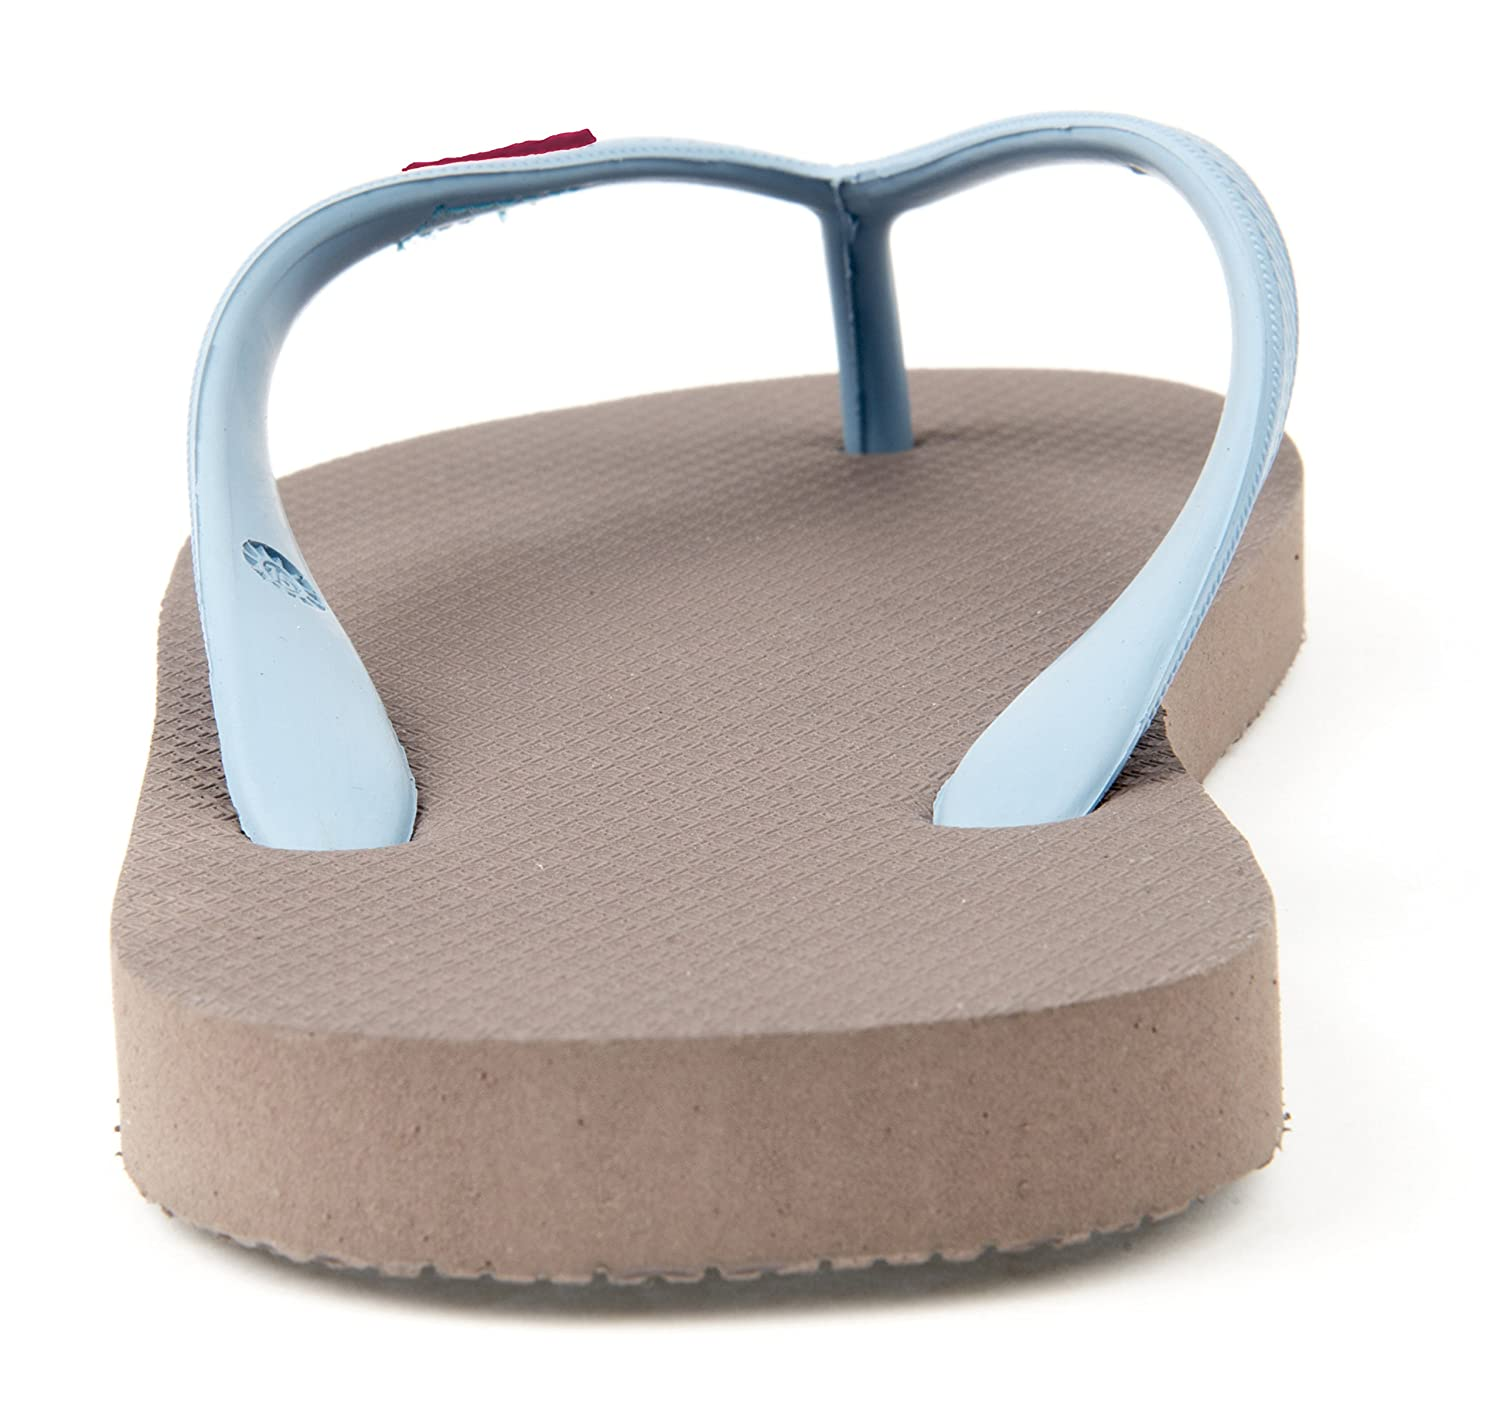 784182cb8aac Olli Fair Trade Natural Rubber Flip Flops Grey Blue 7  Amazon.co.uk   Clothing